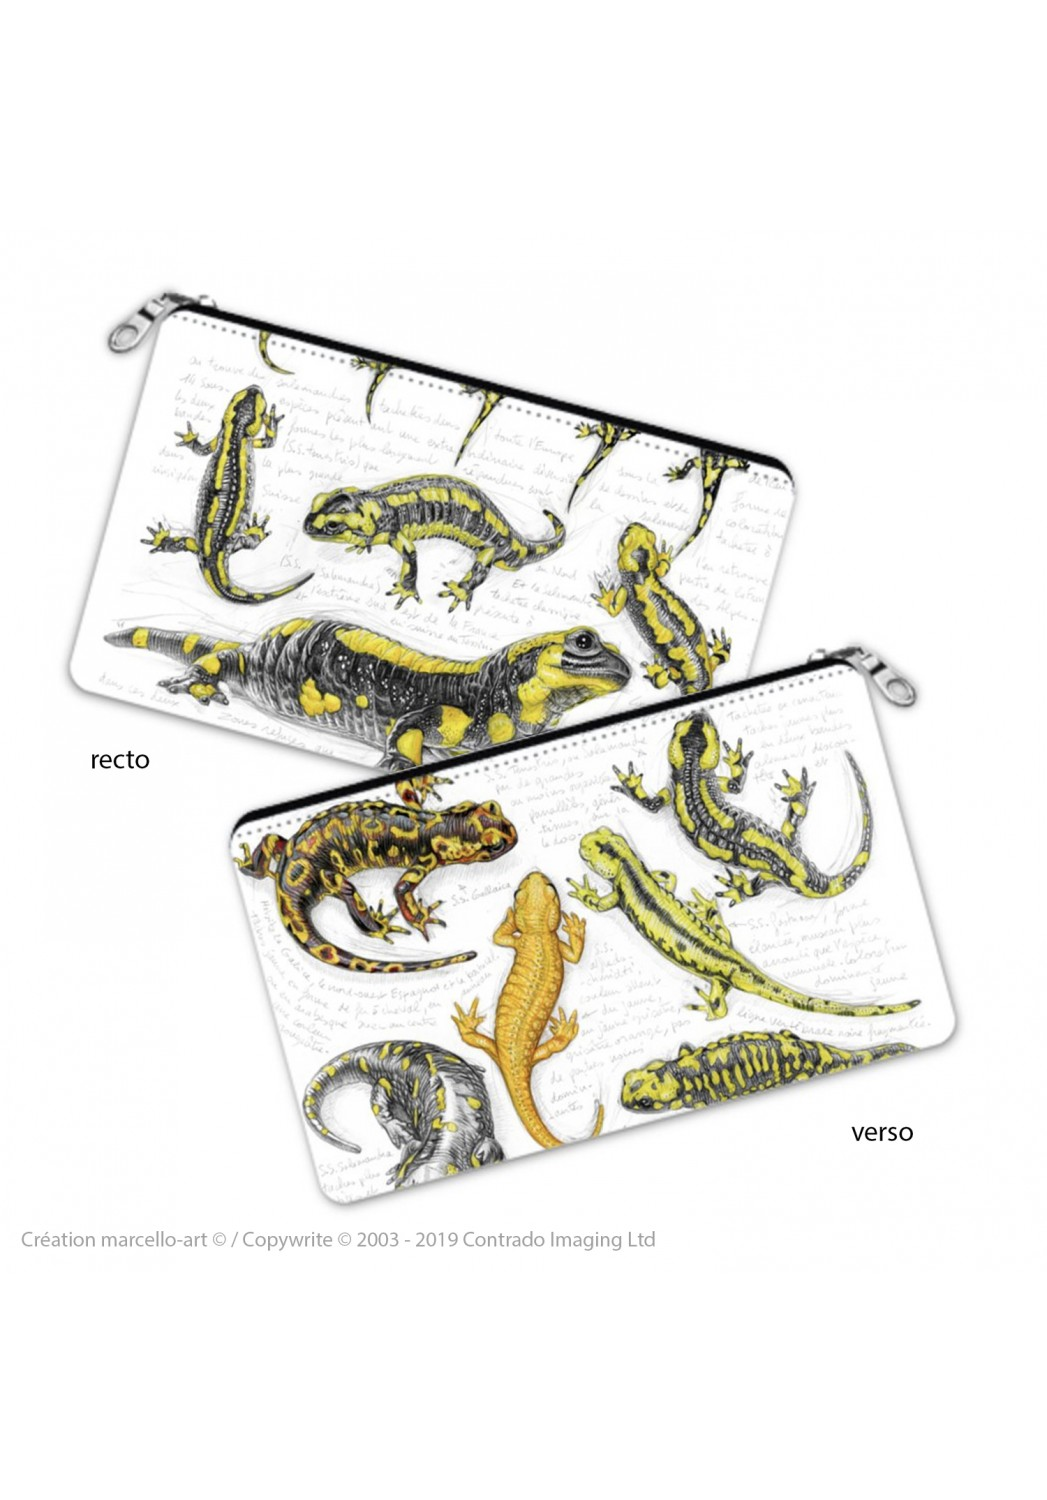 Marcello-art: Decoration accessoiries Pencil case 383 salamander